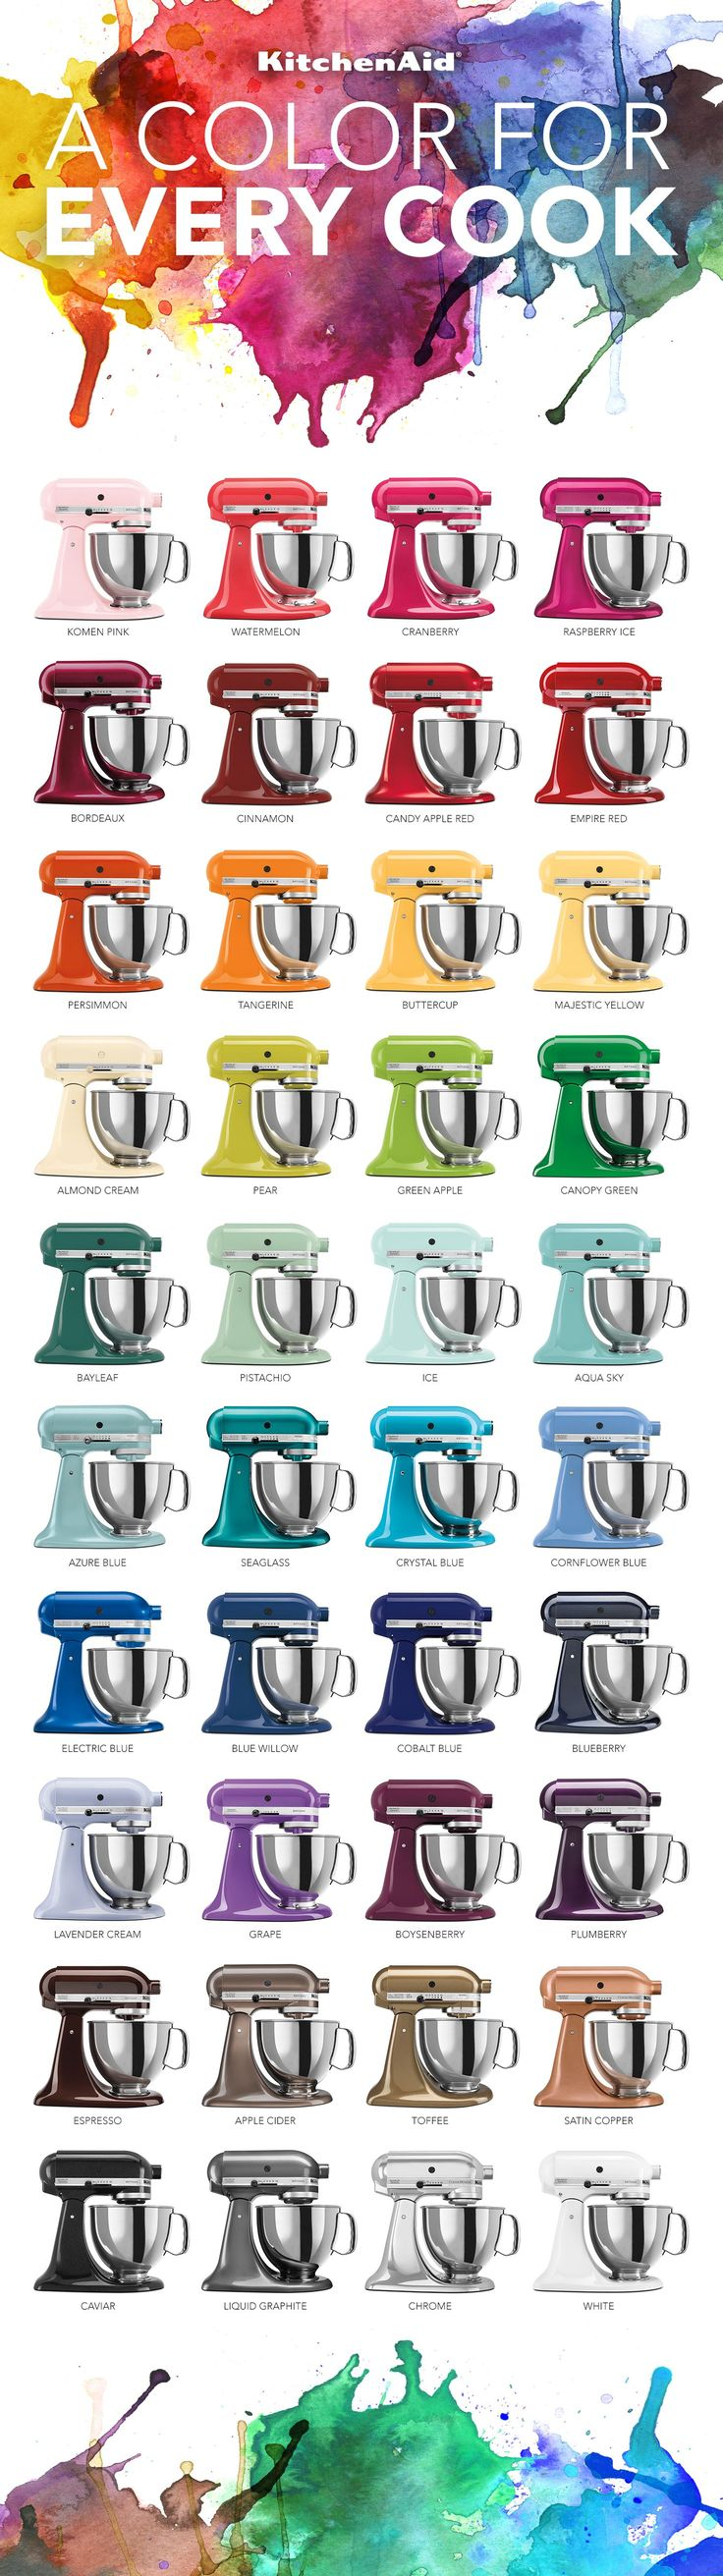 Kitchen Small Appliances List - The colorful world of kitchenaid stand mixers an infographic kitchenaid infographic kitchen aid mixerkitchen applianceskitchen